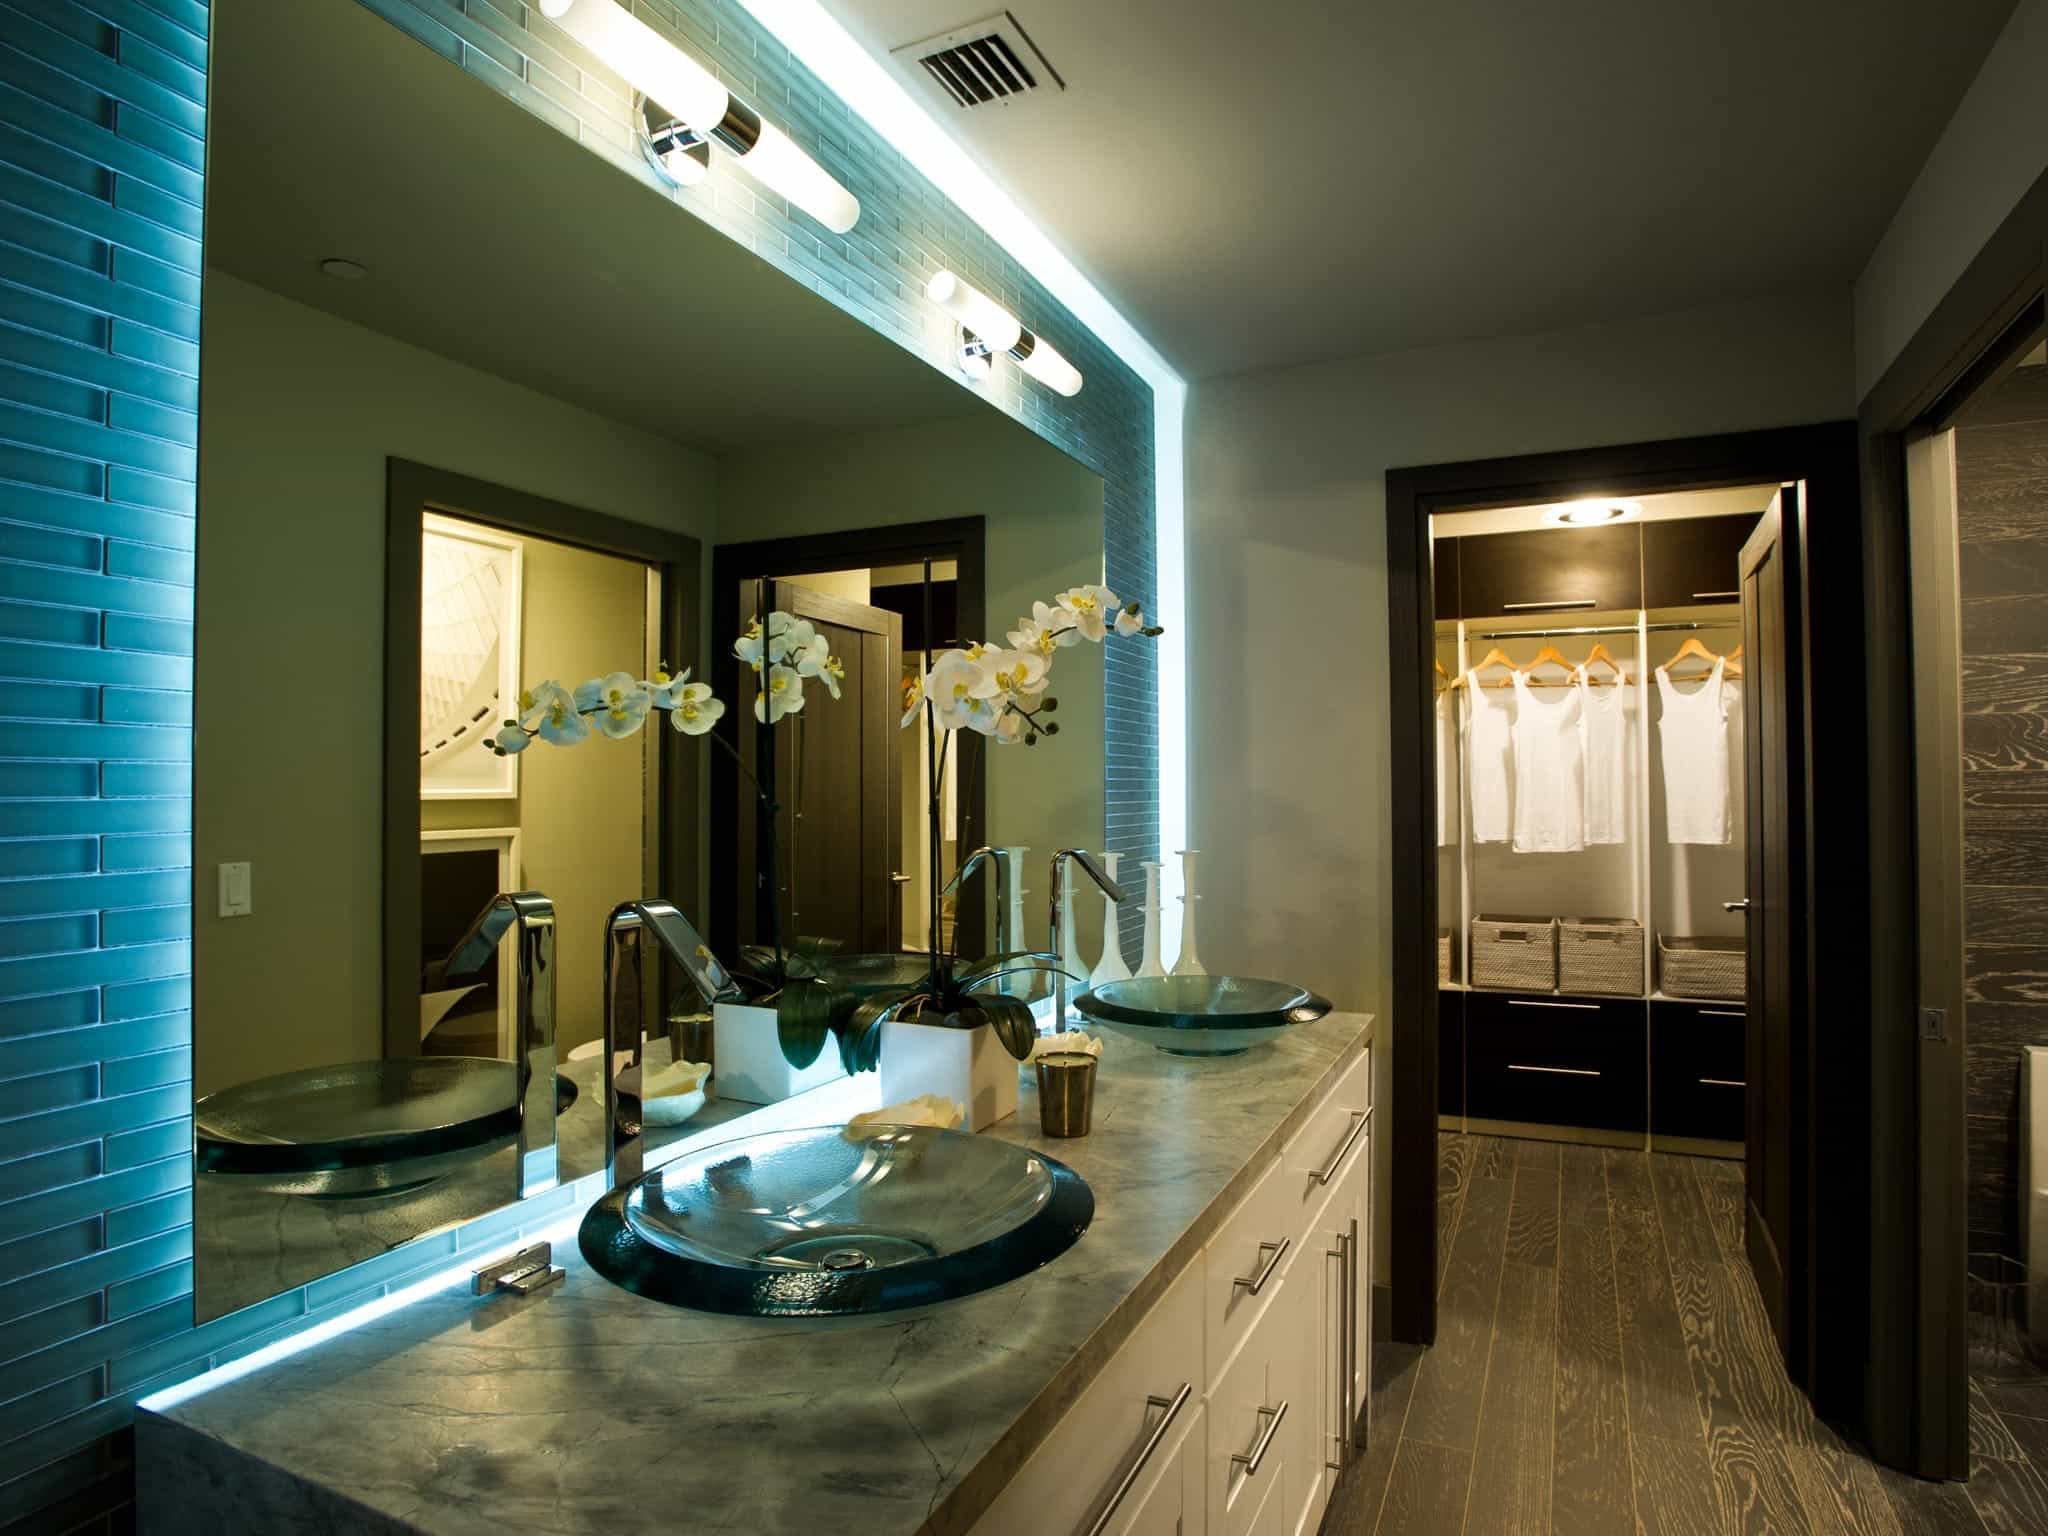 Bathroom Vanity And Mirror With Dramatic Lighting (Image 3 of 20)